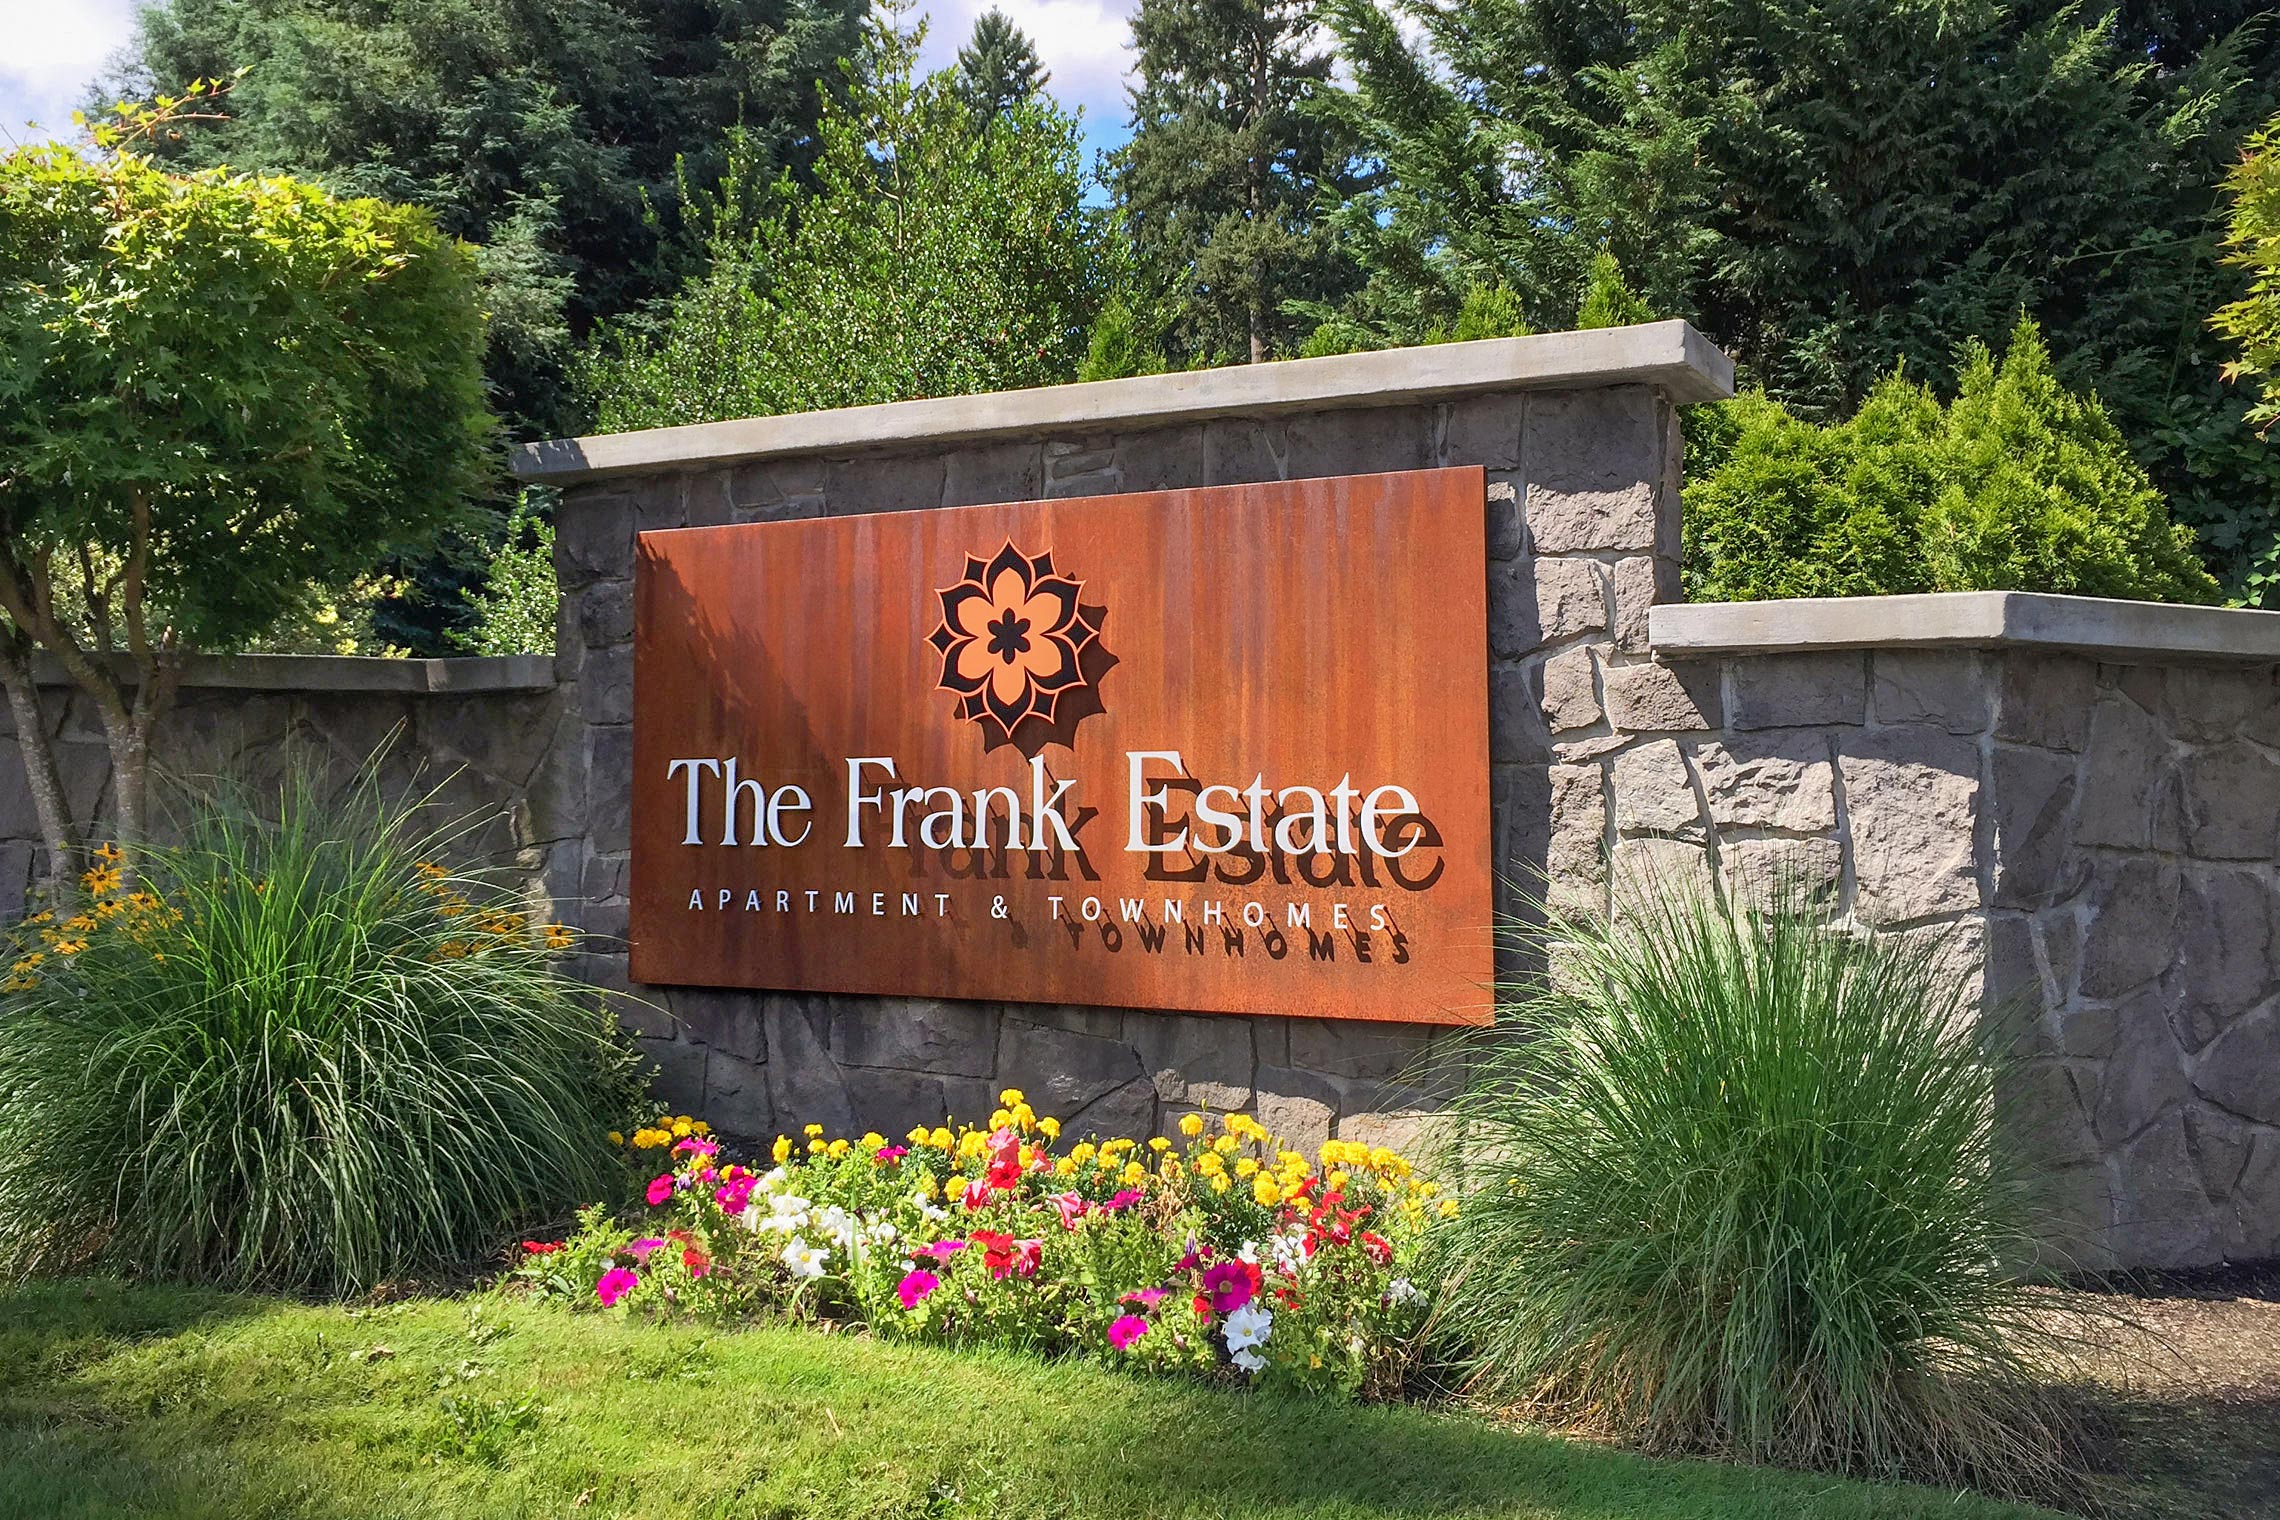 The Frank Estate Apartment & Townhomes Corten Steel Monument with Aluminum Logo Icon